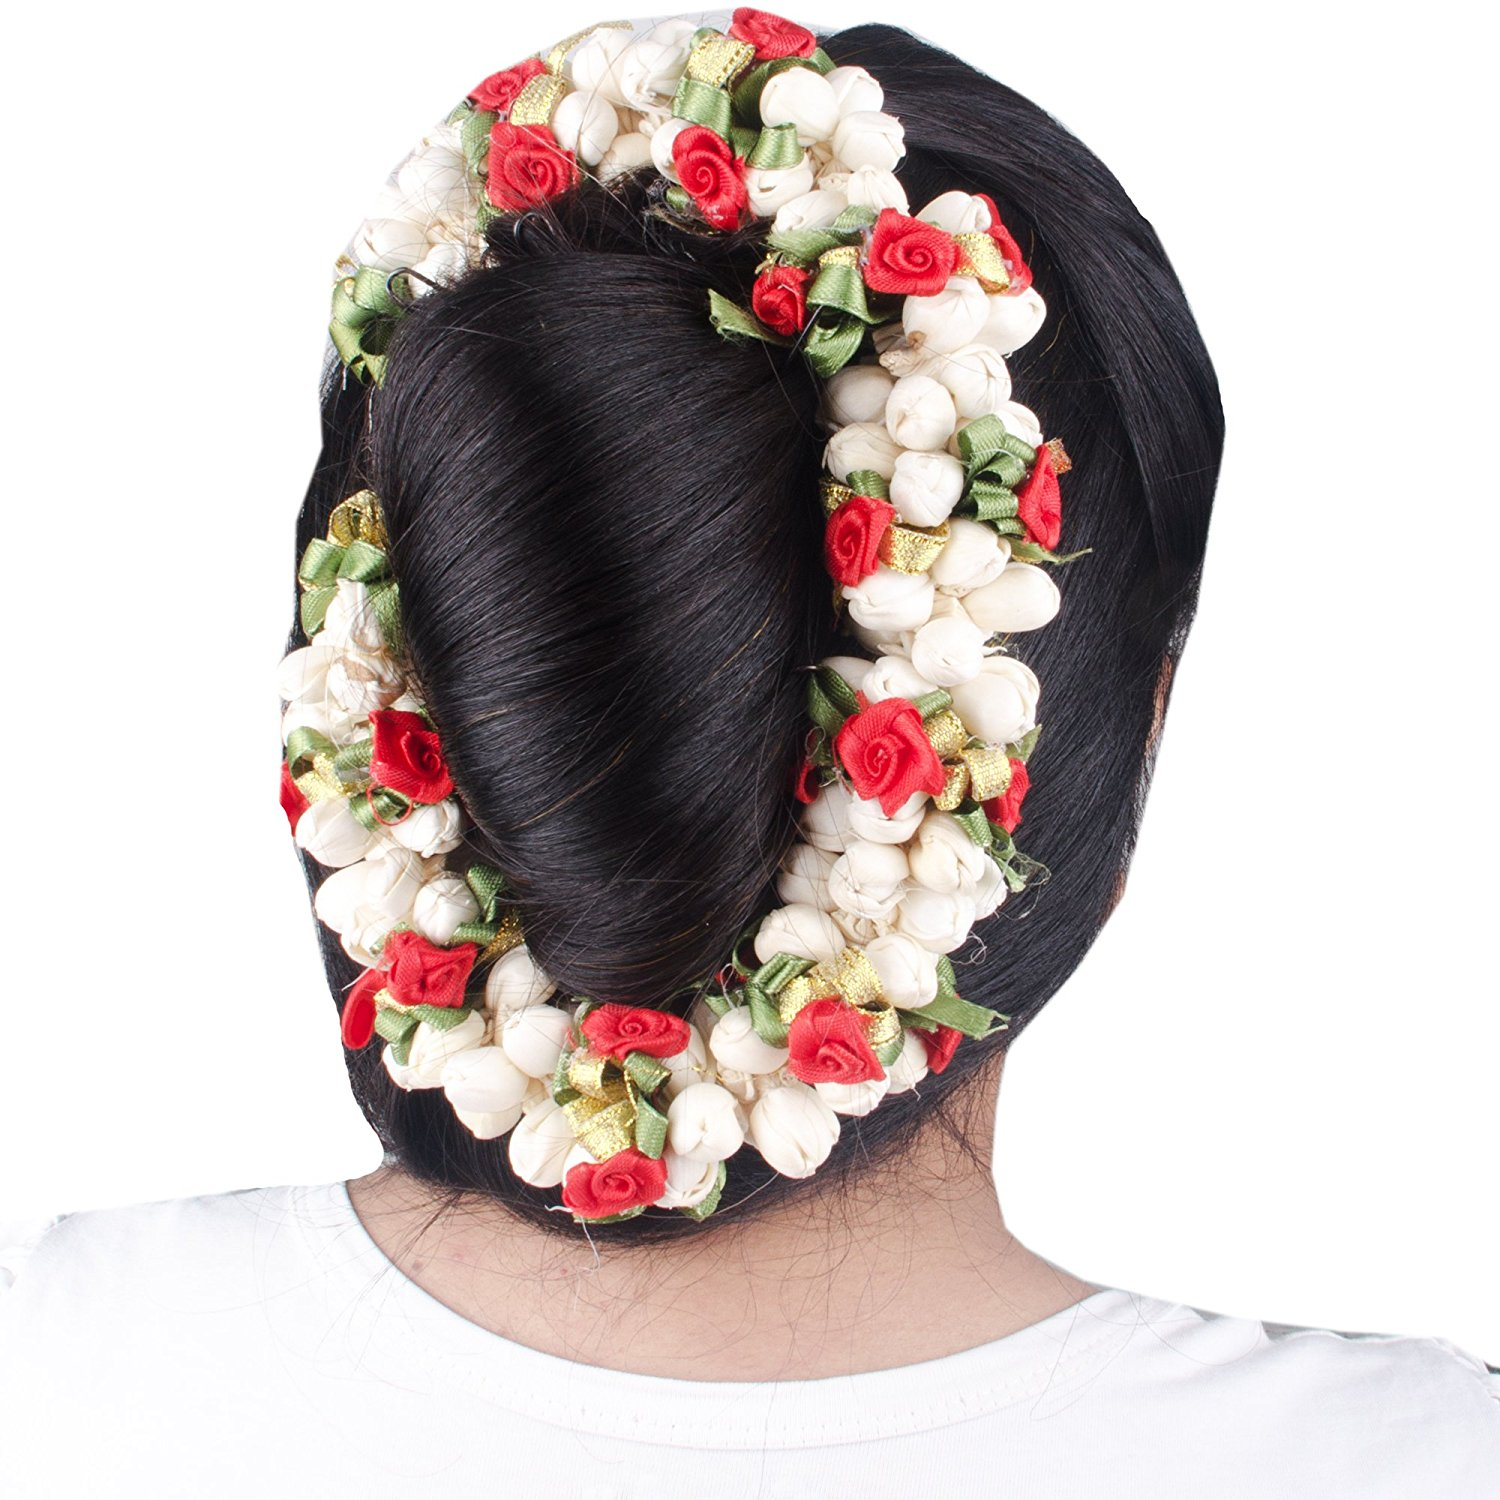 Fresh jasmine flowers for hair best image of flower mojoimage fresh jasmine gajra roses blue orchid mogra tiara izmirmasajfo